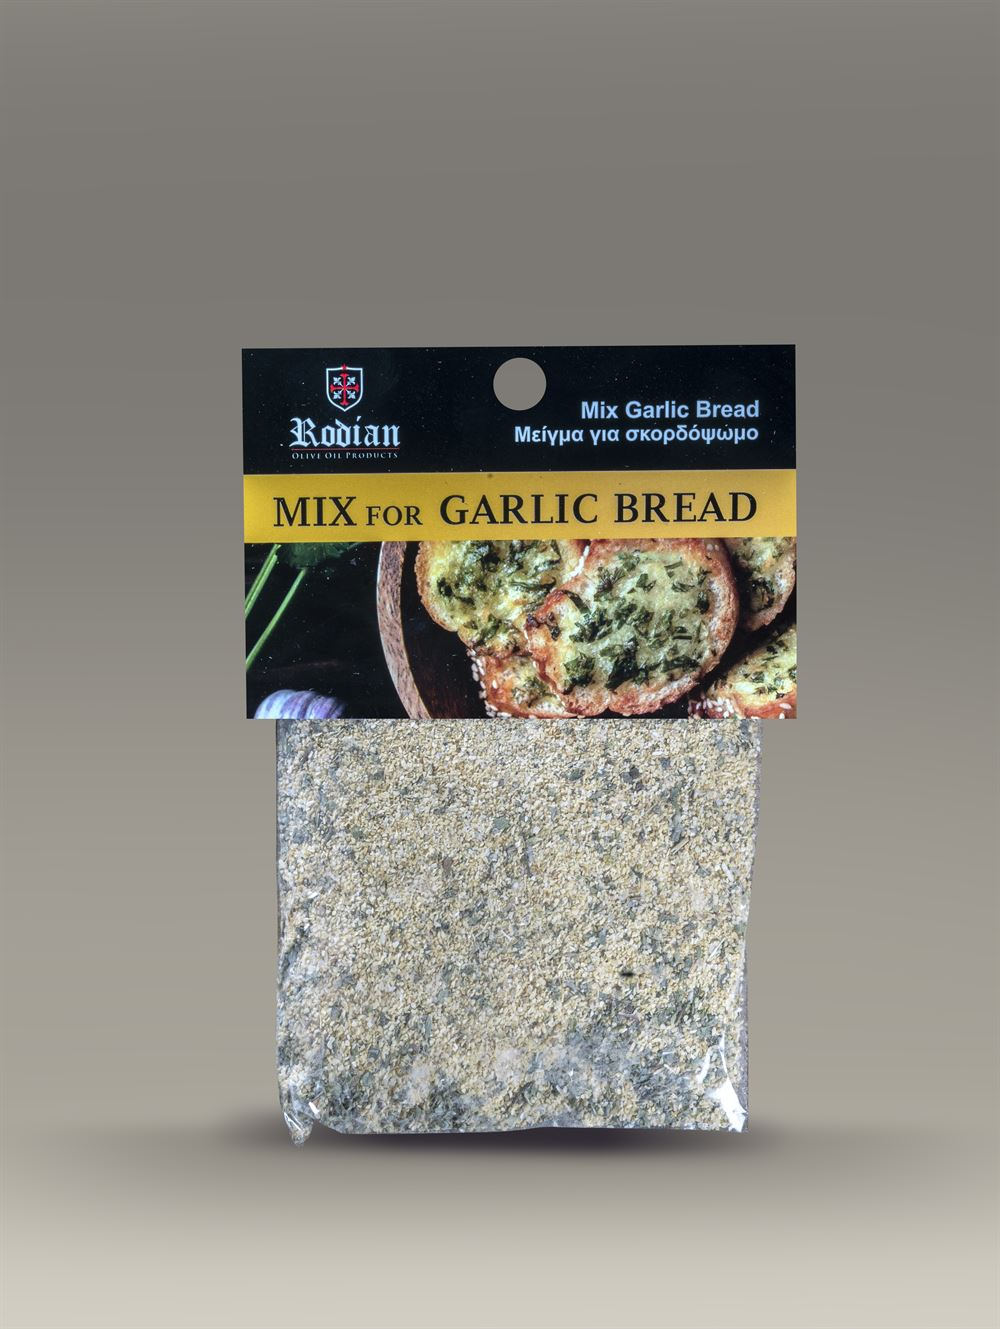 mix for garlic bread - Rodian Herbs & Spices